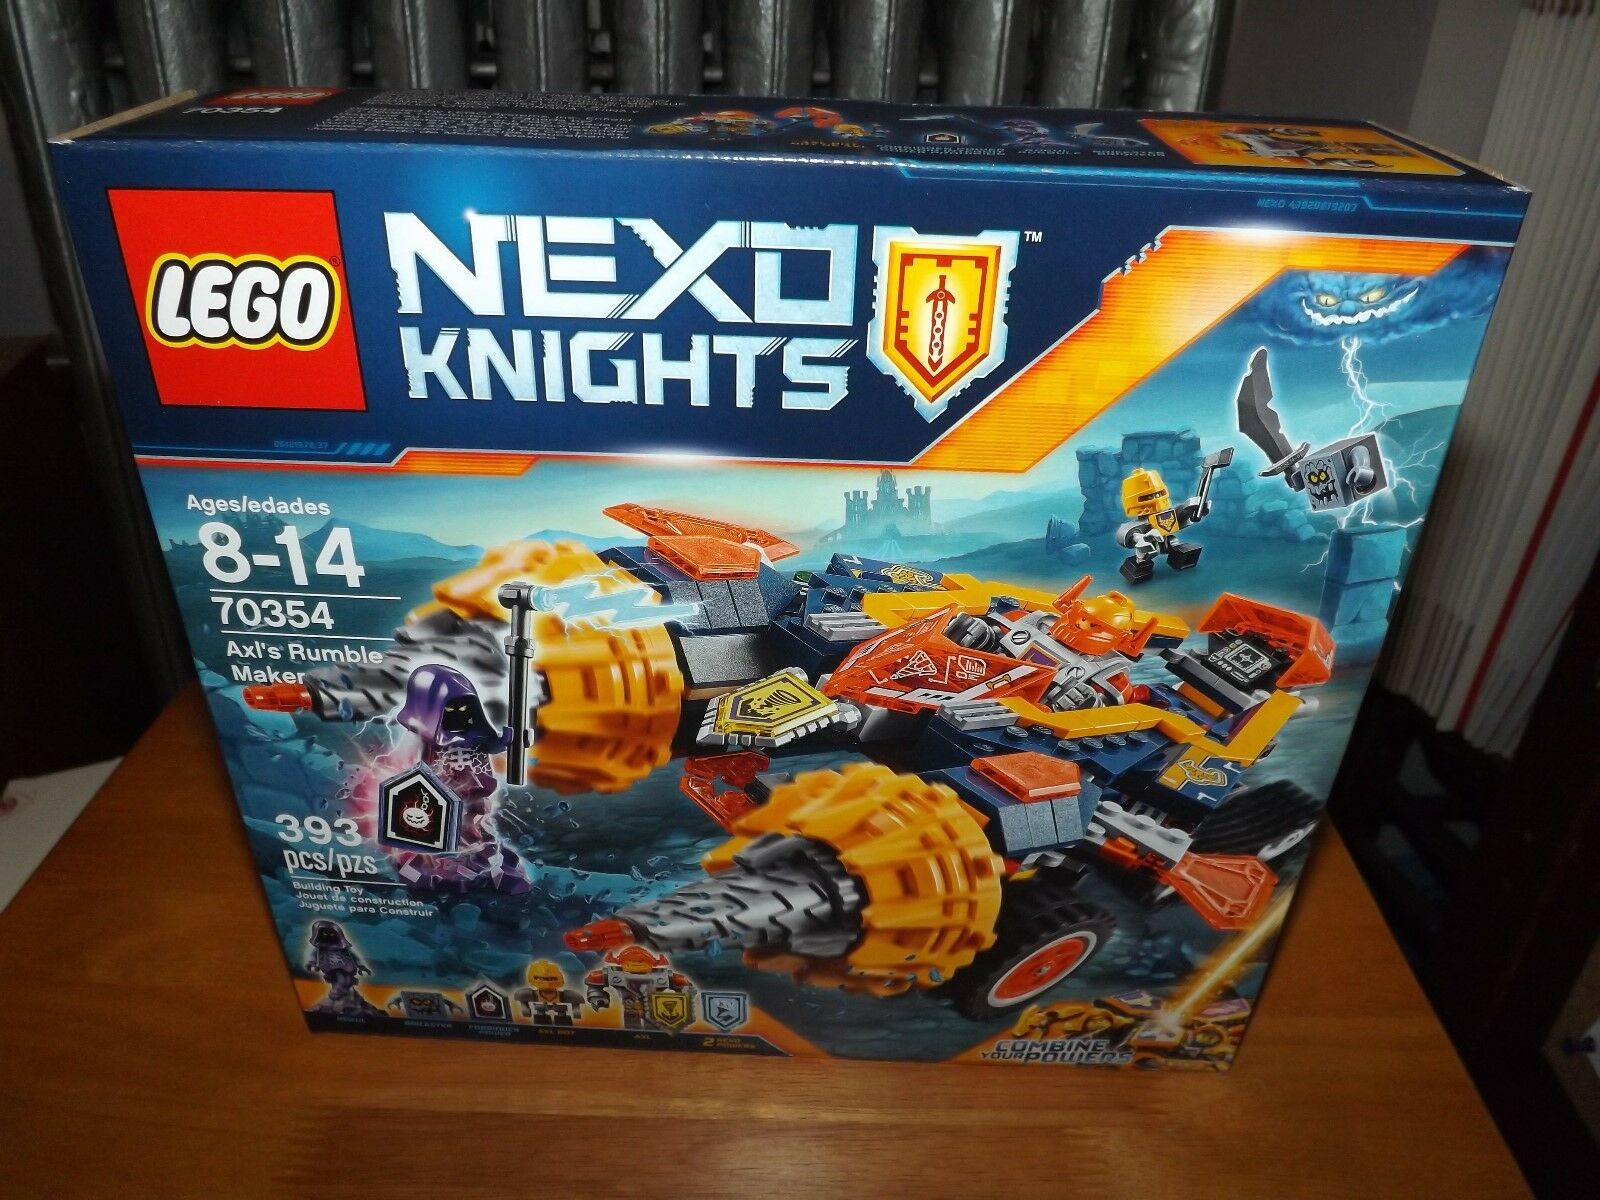 LEGO, NEXO KNIGHTS, AXL'S RUMBLE MAKER, KIT  70354, 393 PIECES, NEW IN BOX, 2017